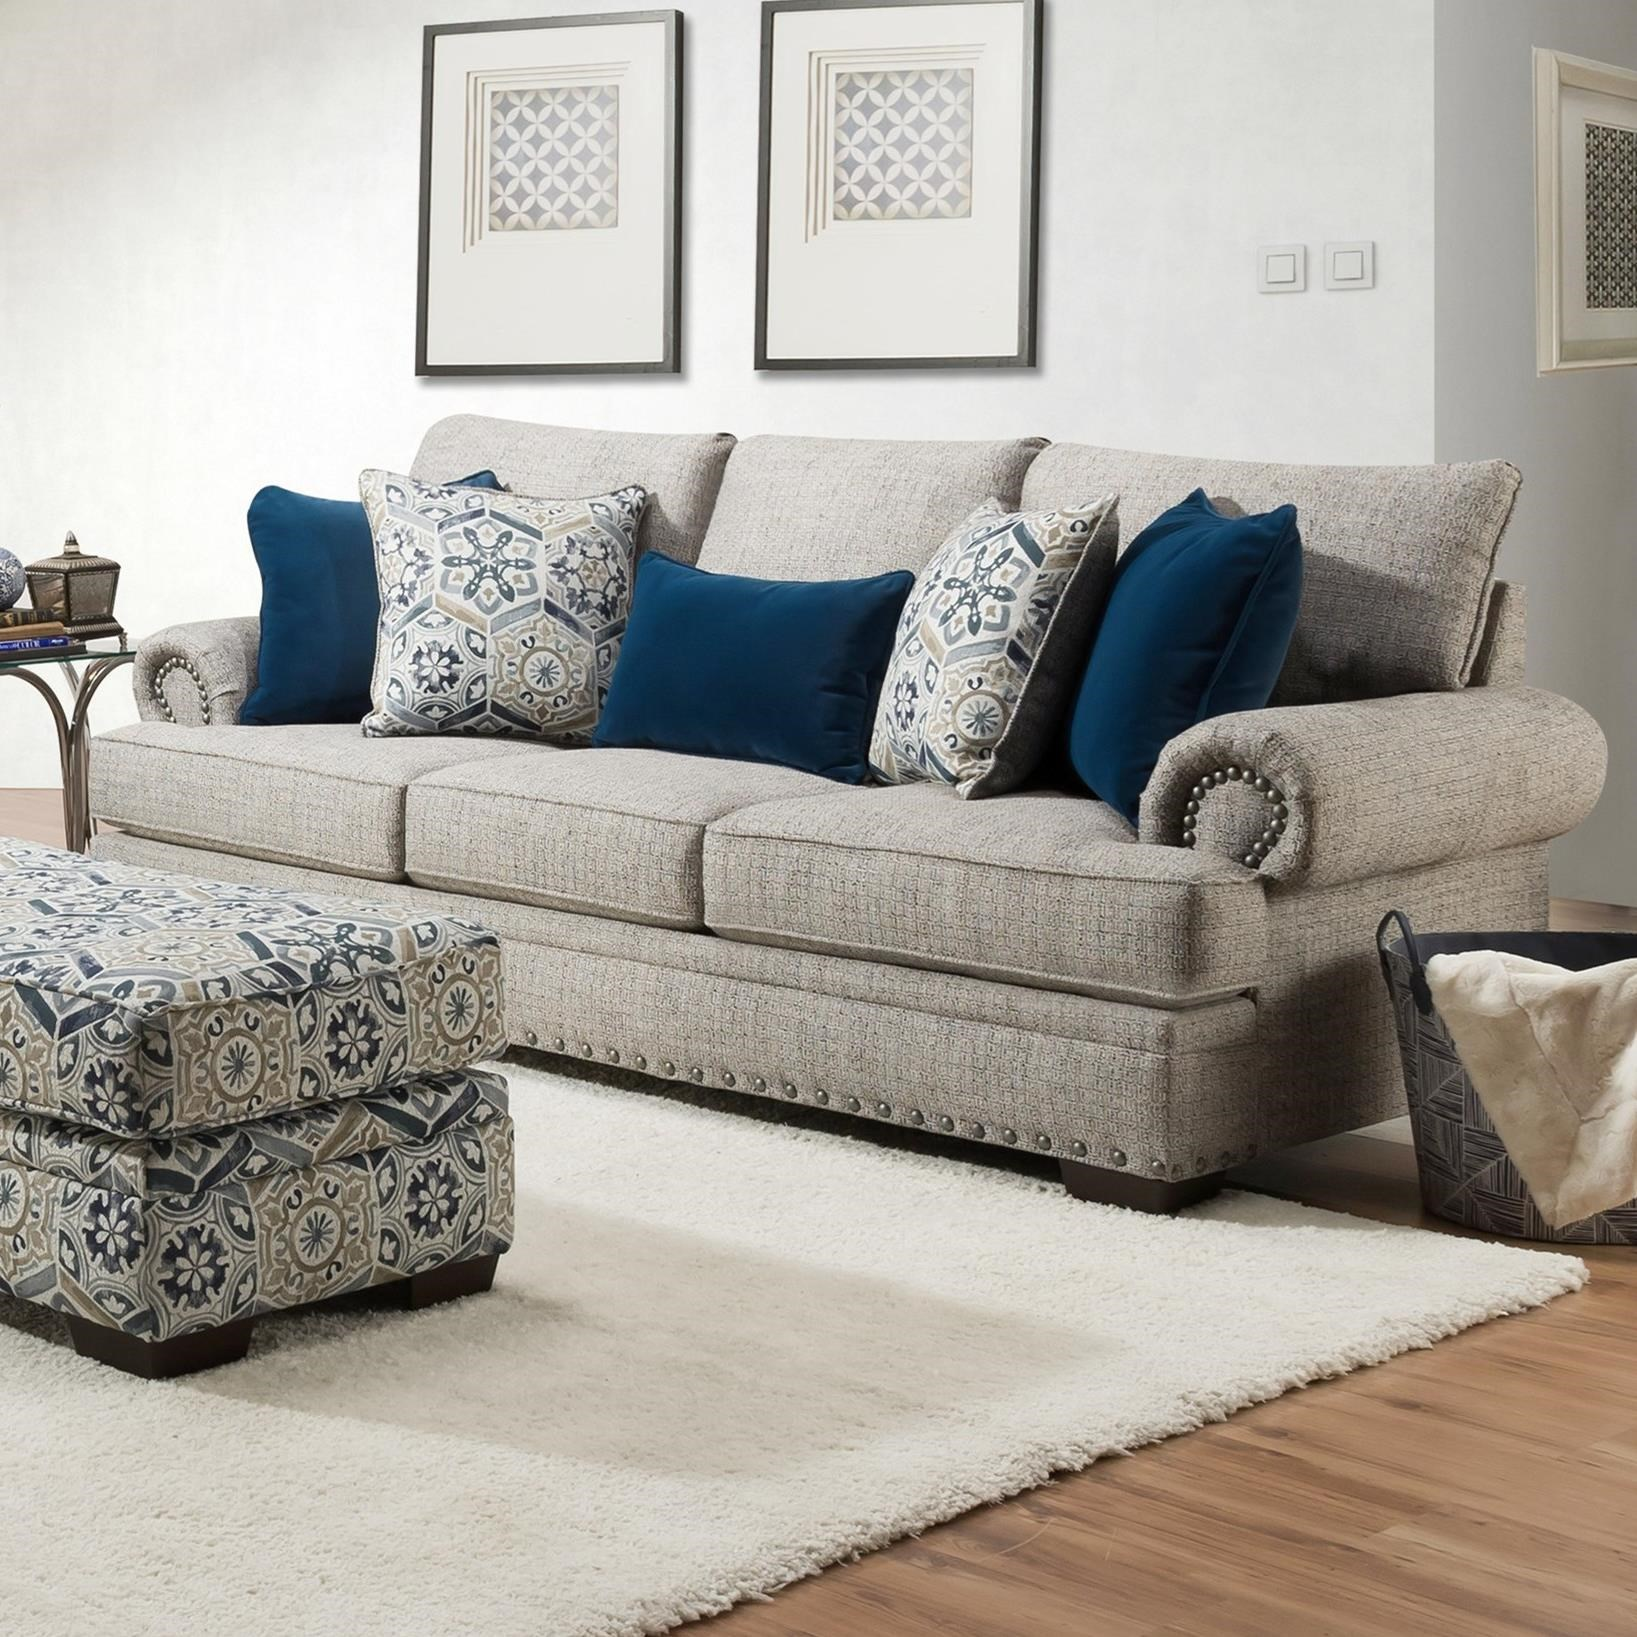 darvin furniture prices